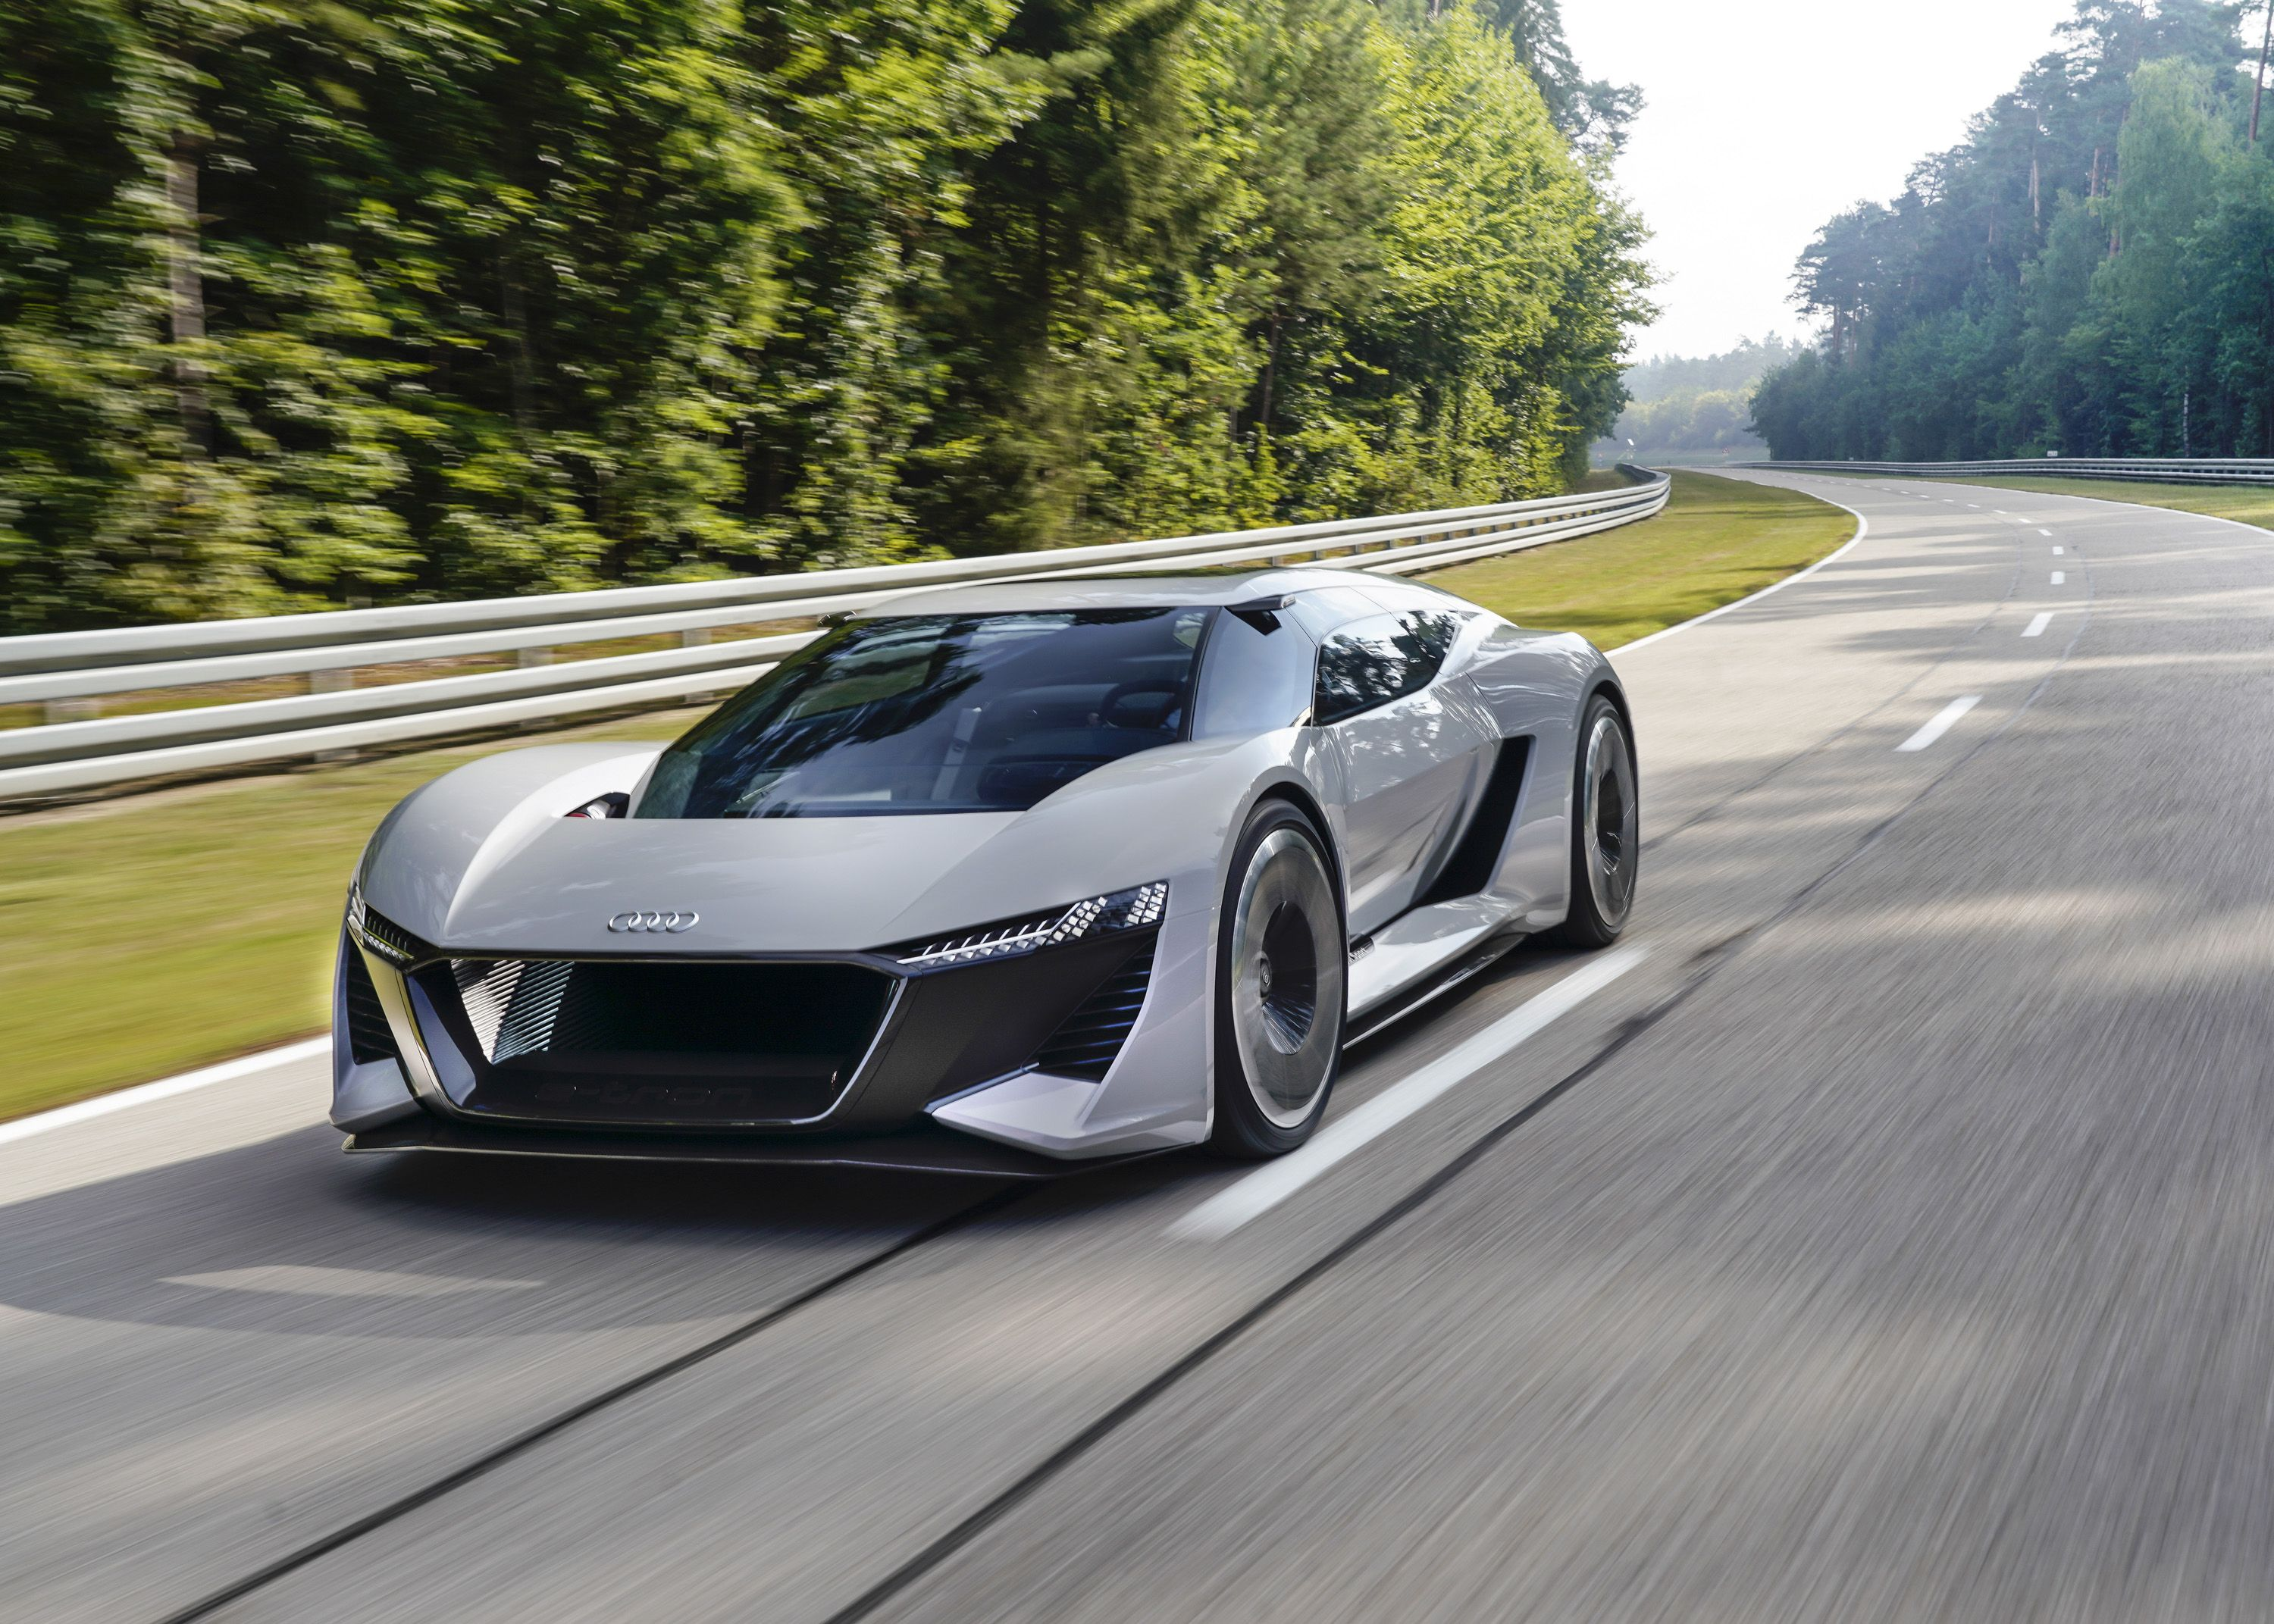 New 2022 Audi R8 Everything We Know So Far Top Speed In 2020 Sports Car Audi Sport Audi Sports Car